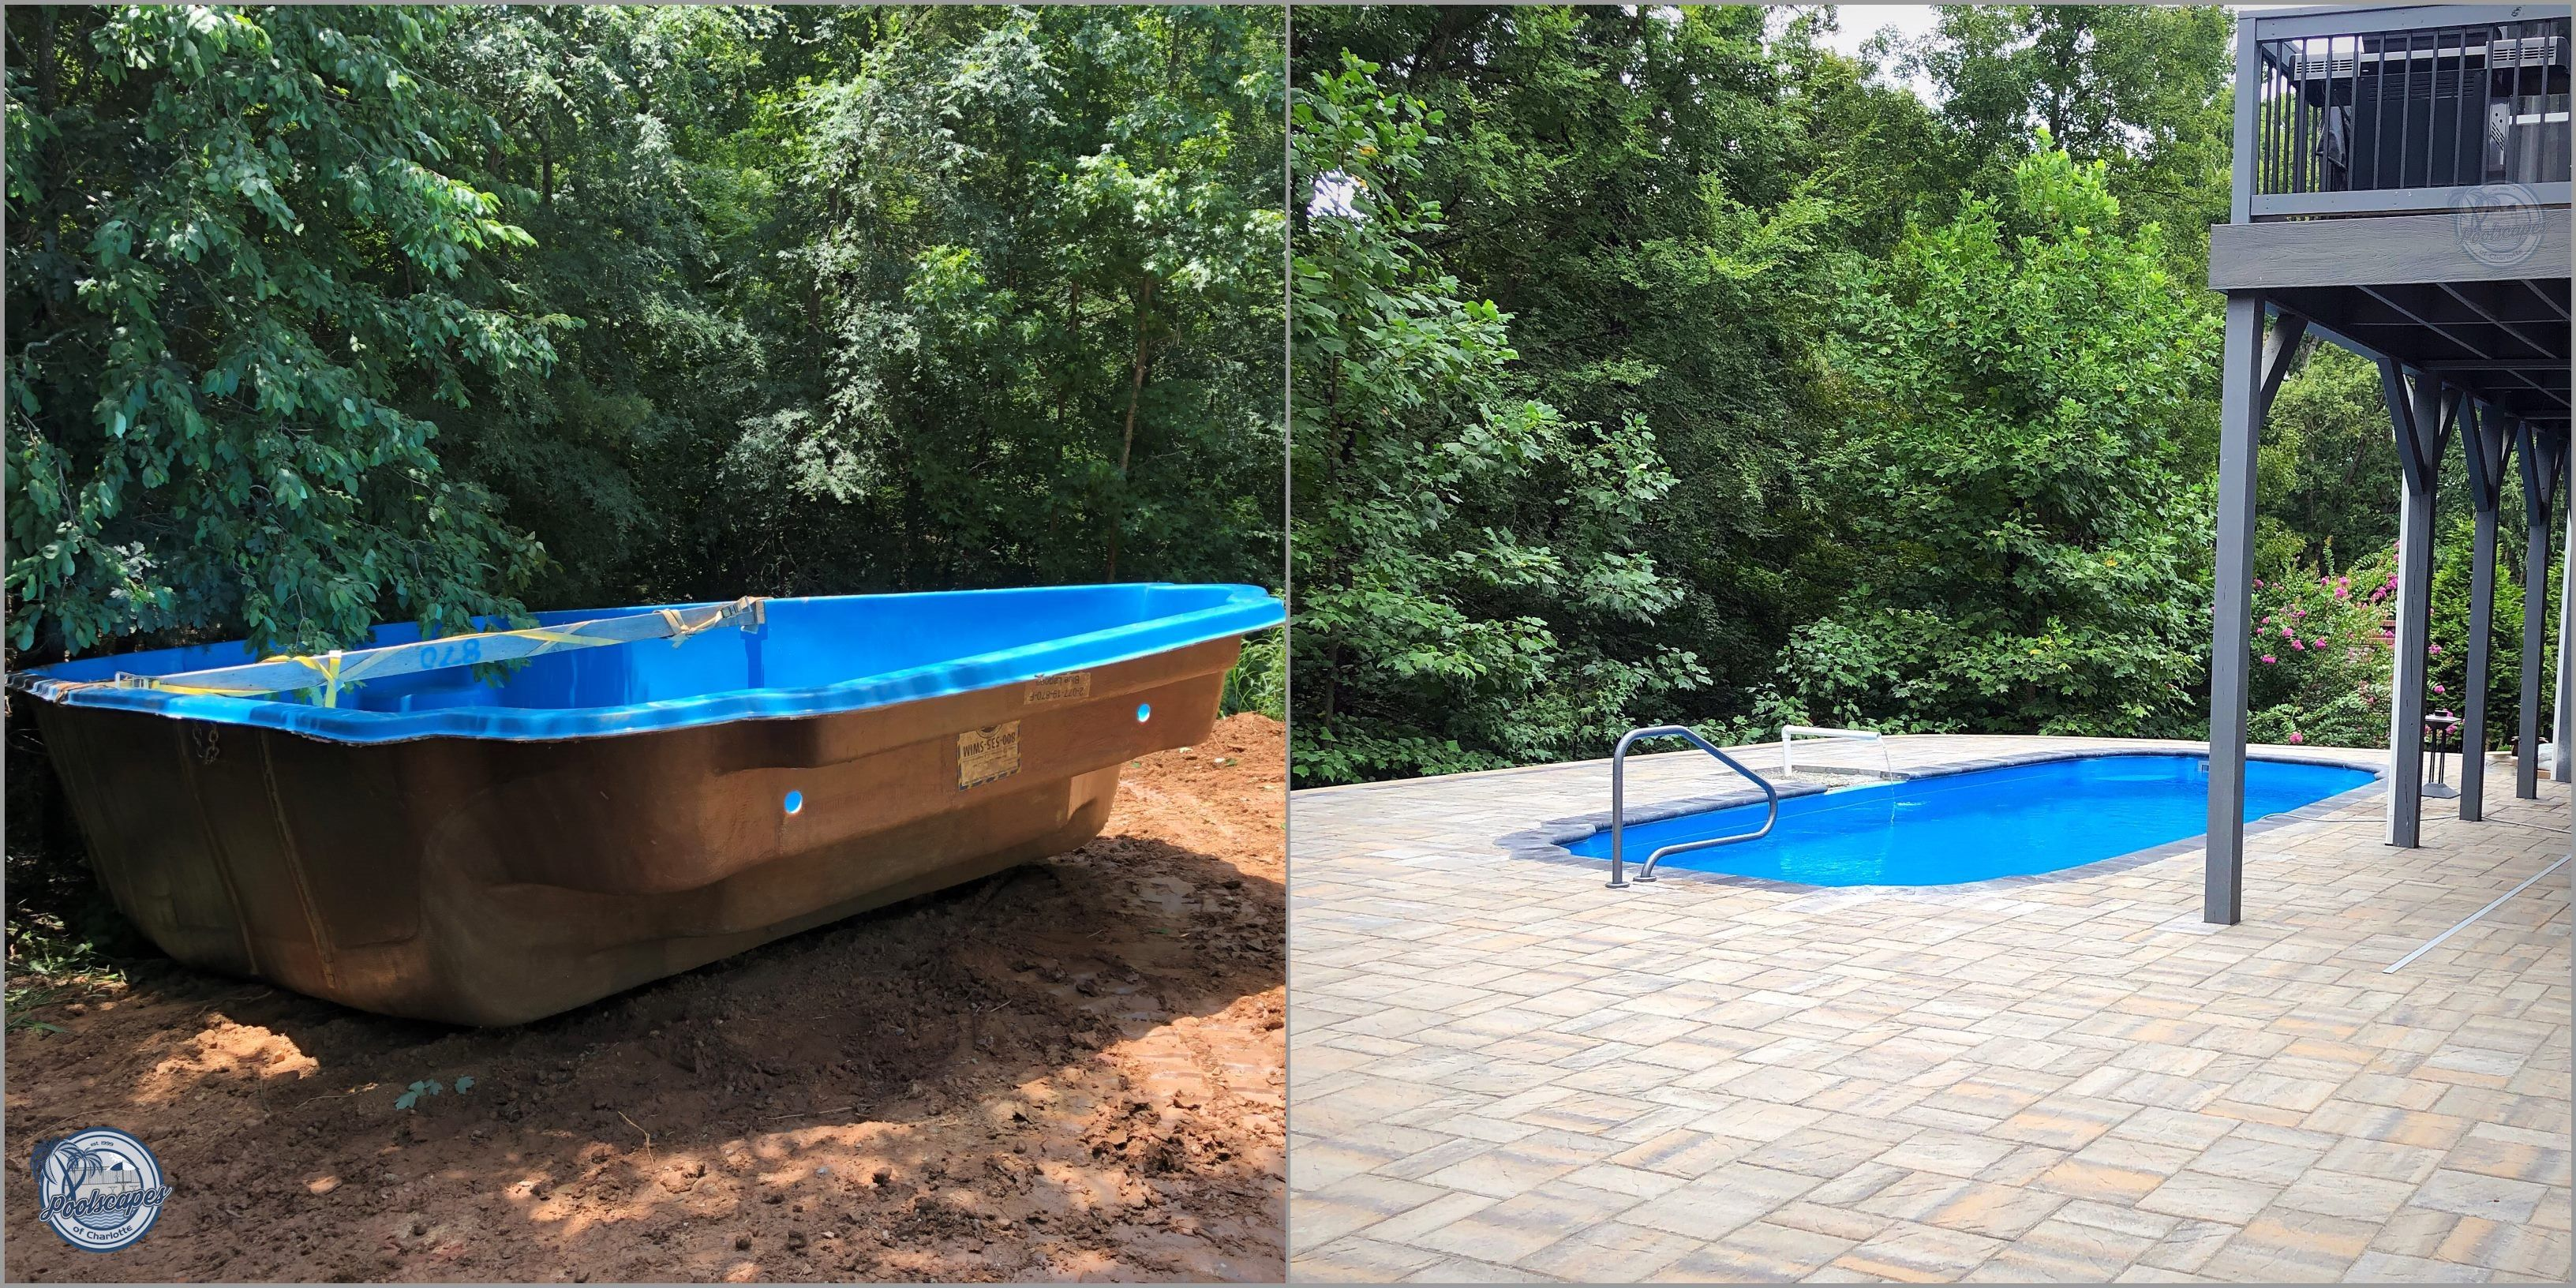 Pin On Backyard Transformation Before And After Pool Construction